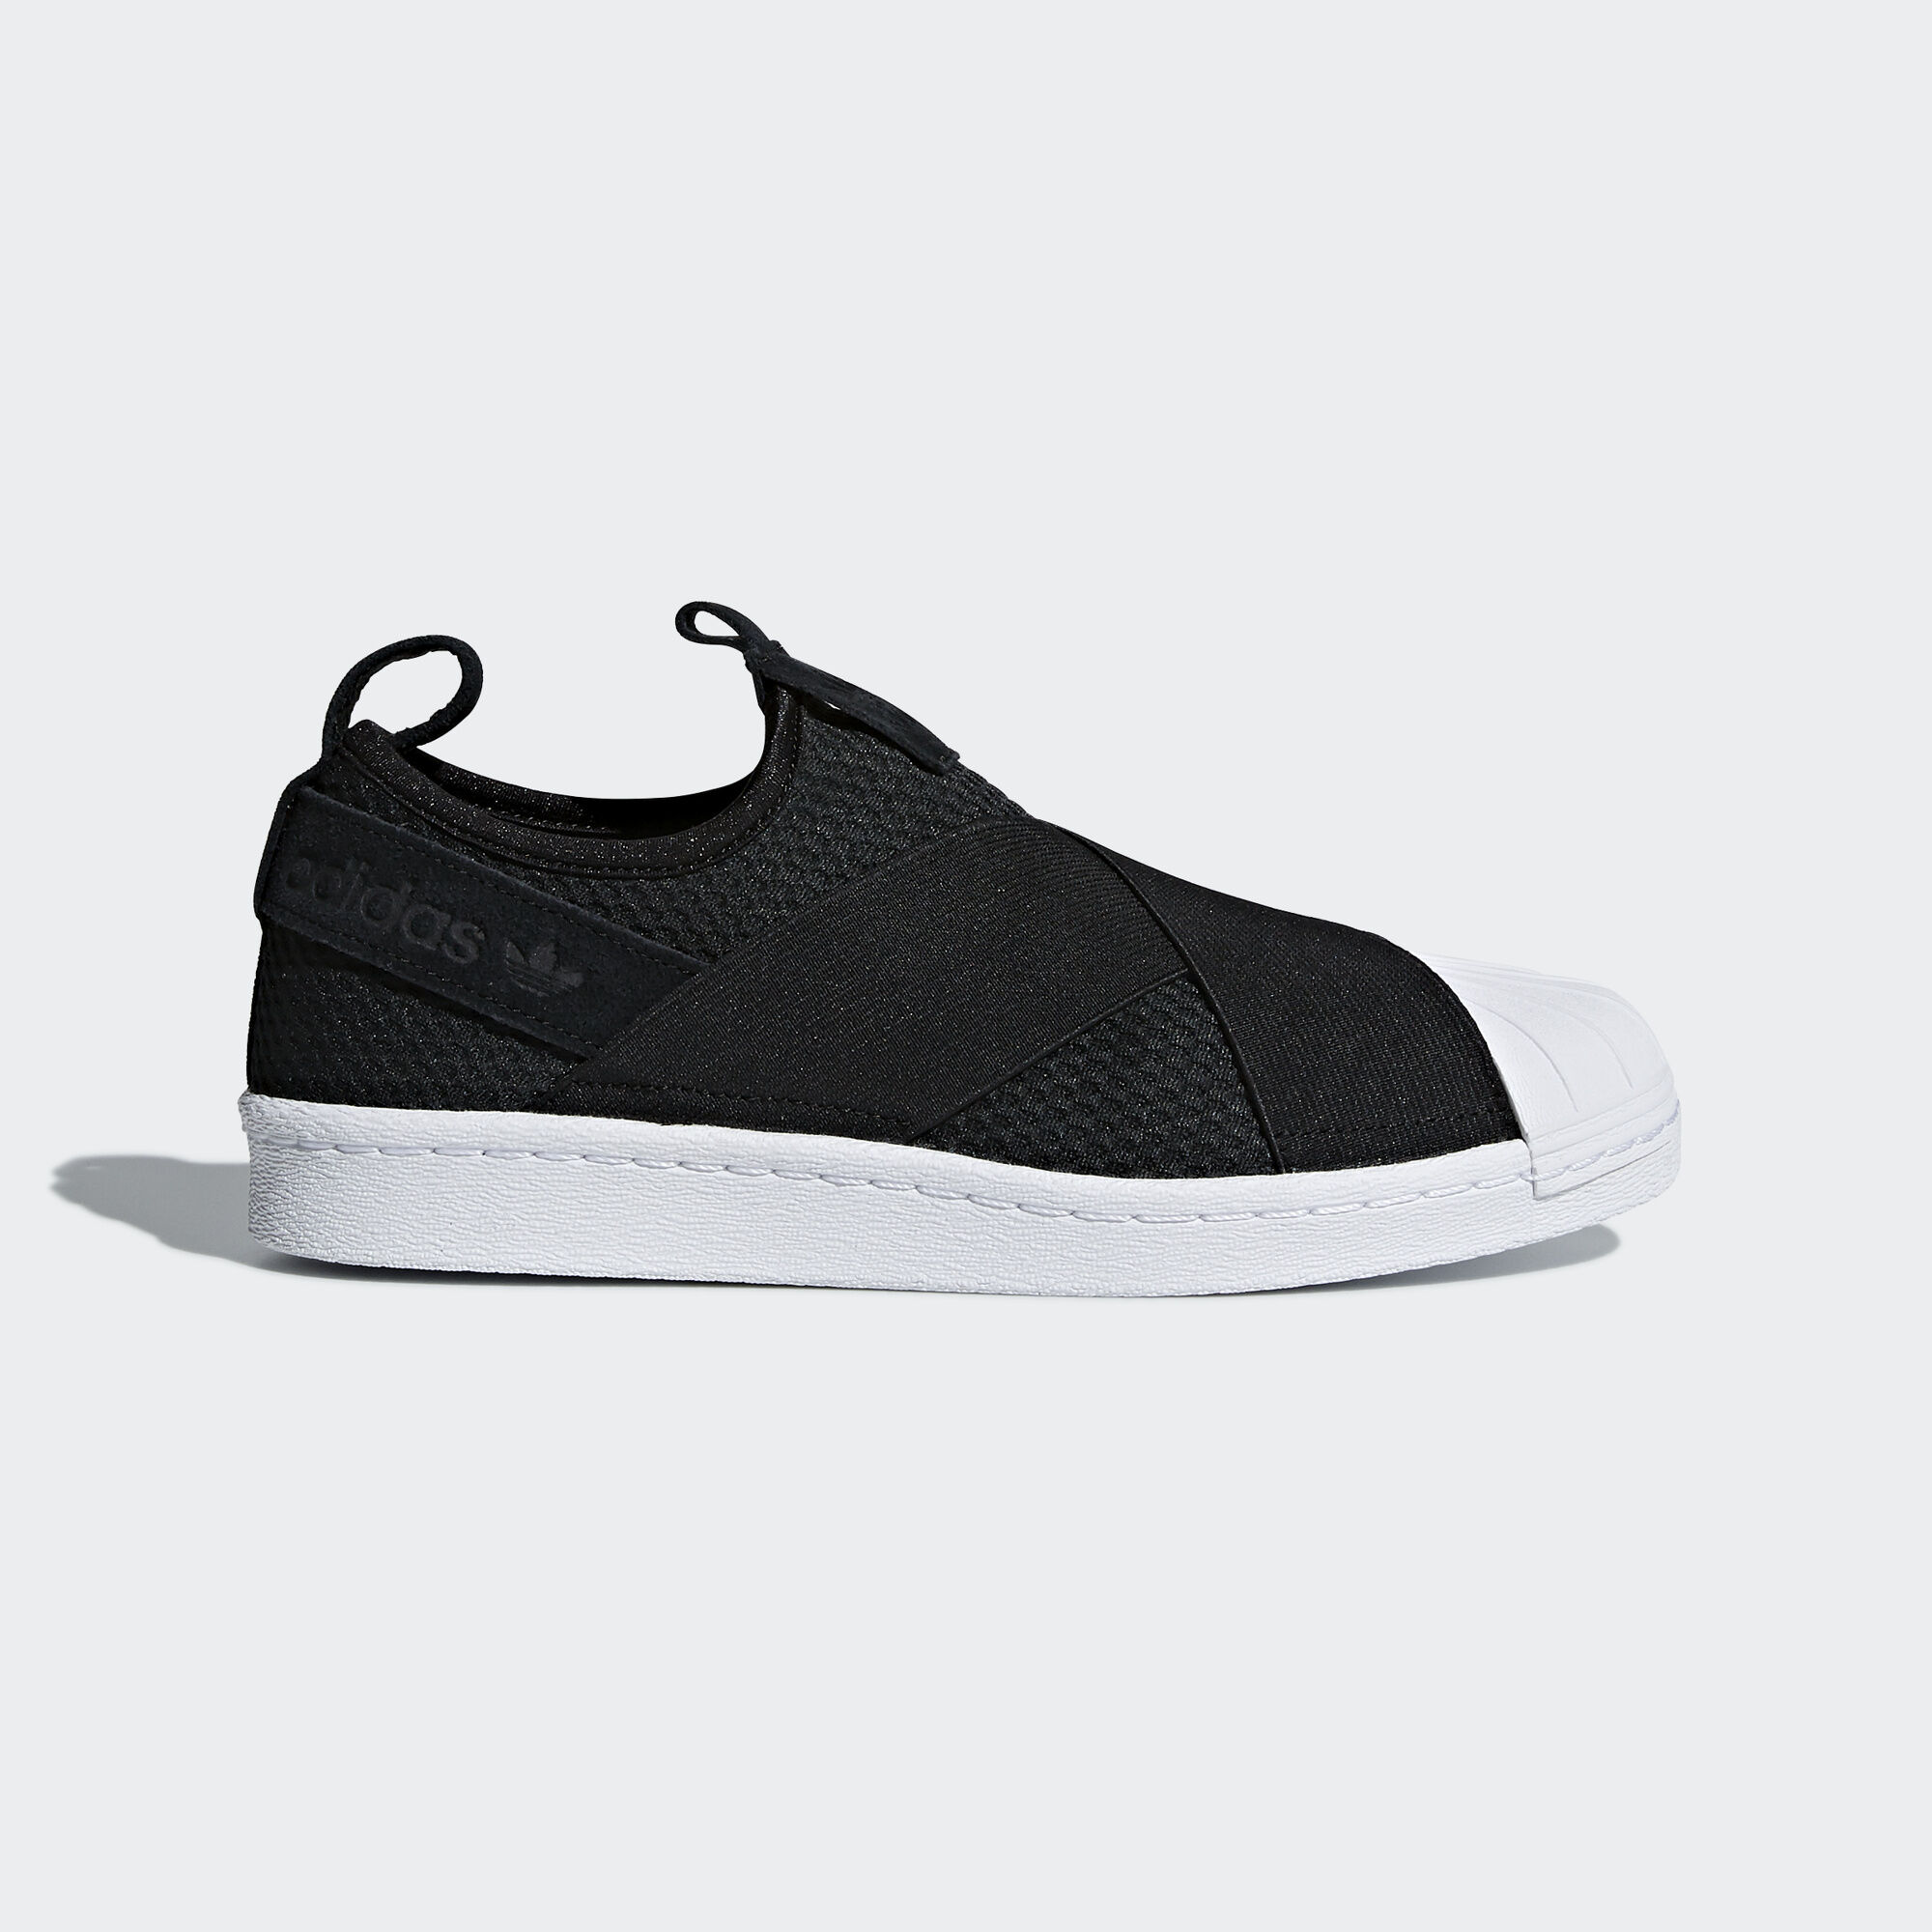 Adidas Superstar Slip On Shoes Black Asia Middle East White Core Ftwr B37193